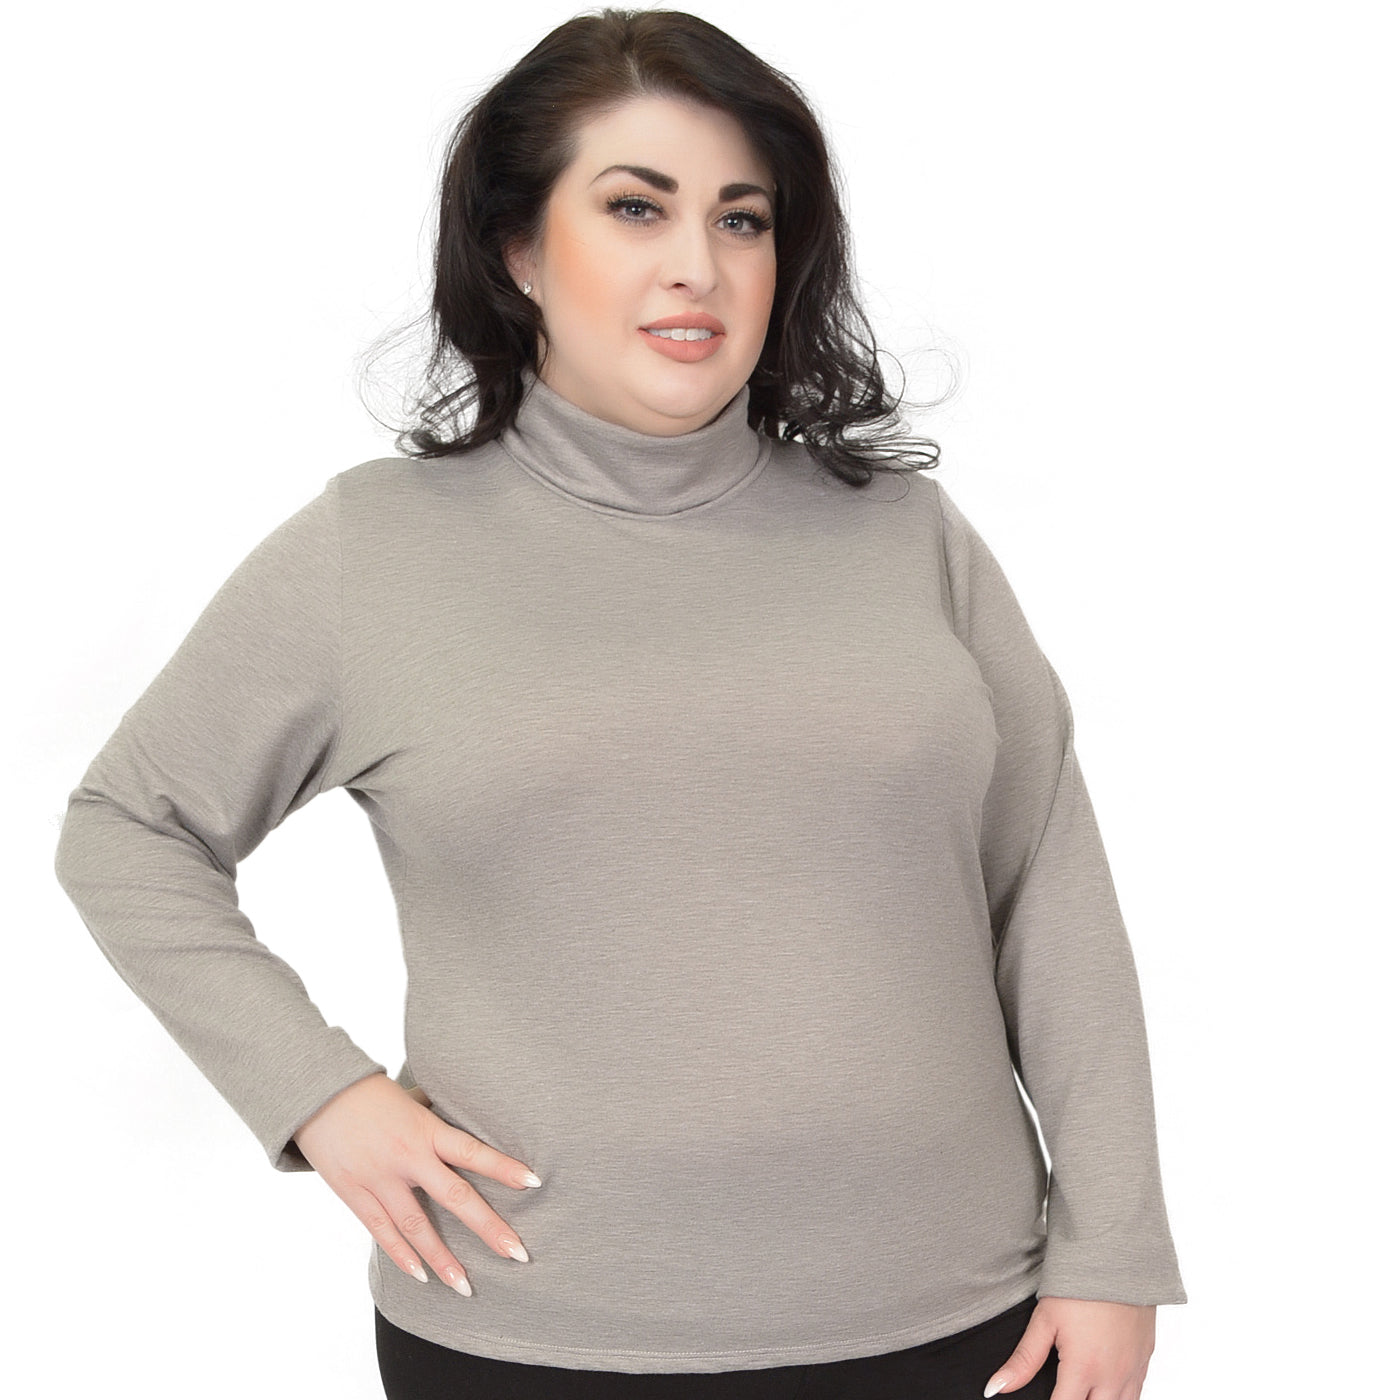 187a34fca3ee2 Stretch is Comfort Women s Plus Size Ponte Knit Long Sleeve Turtleneck Top  – Stretch Is Comfort